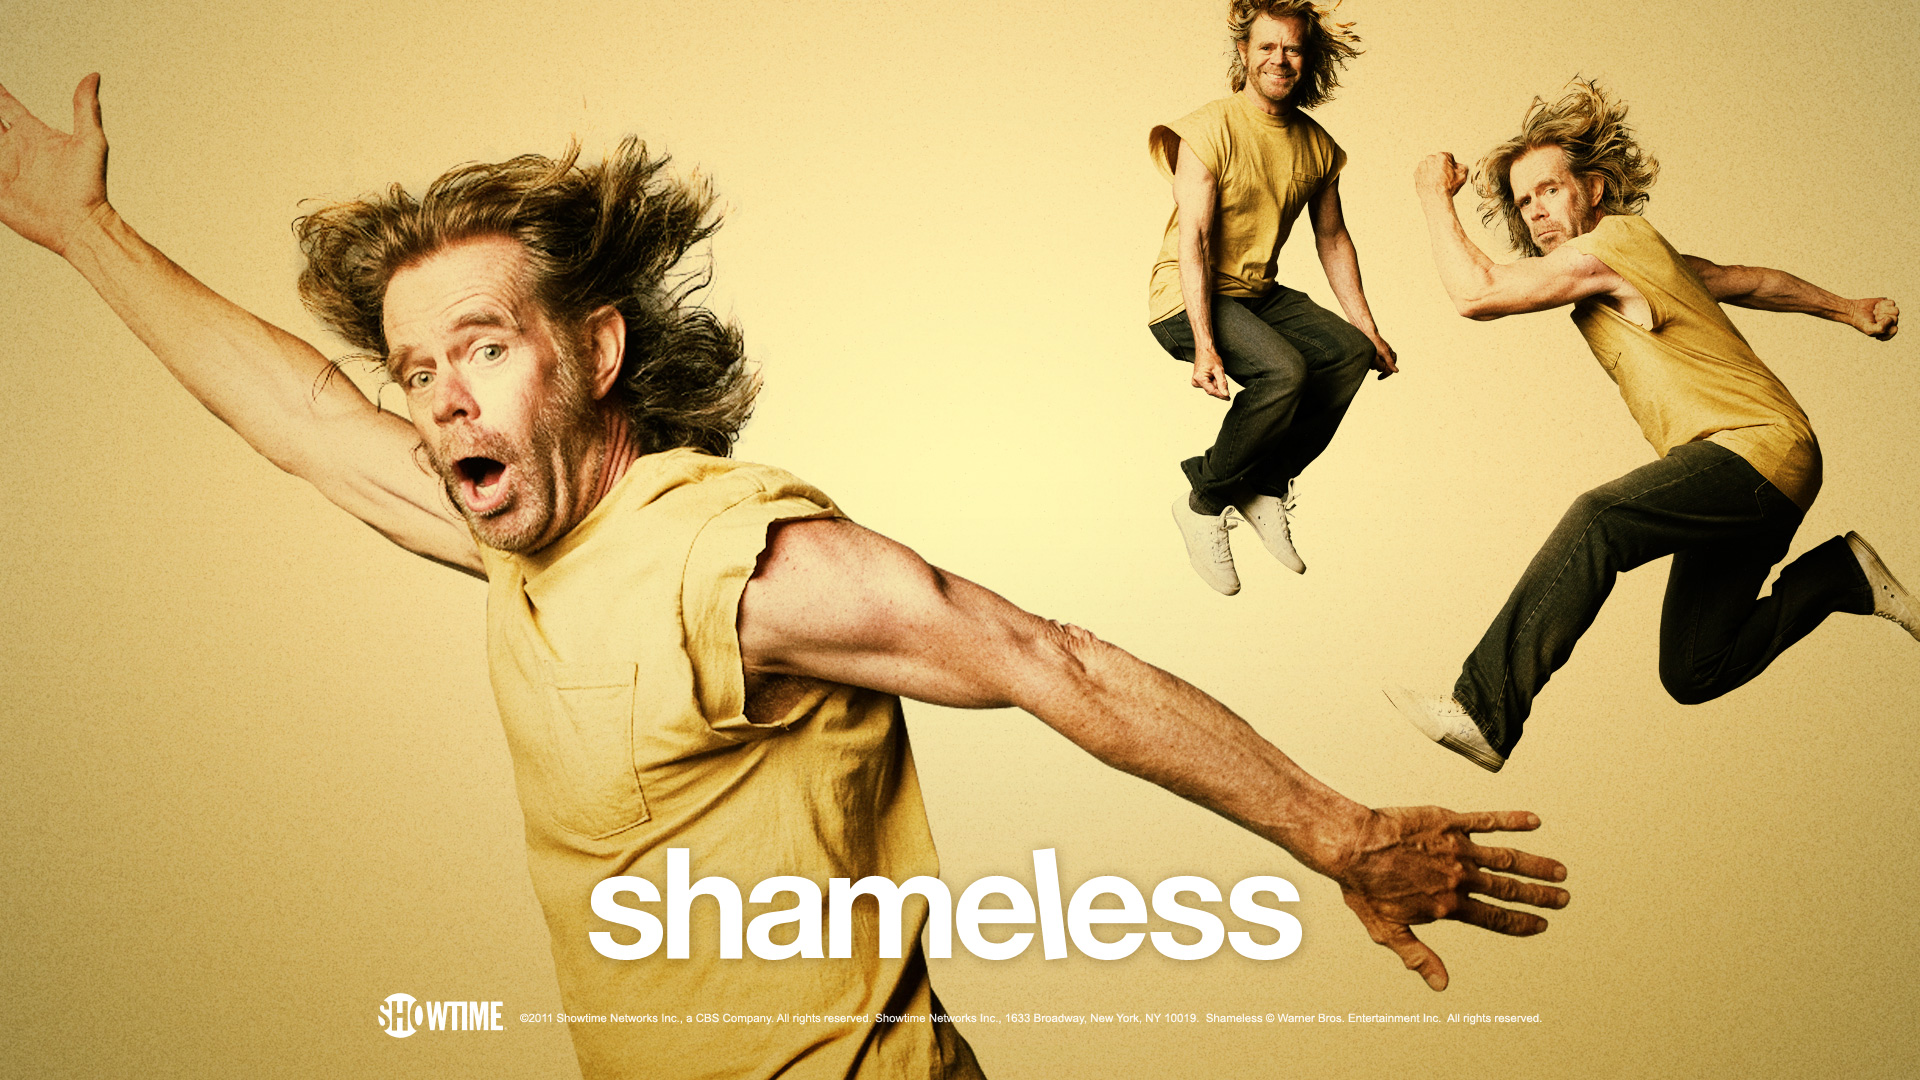 Shameless wallpaper 6 | WallpapersBQ